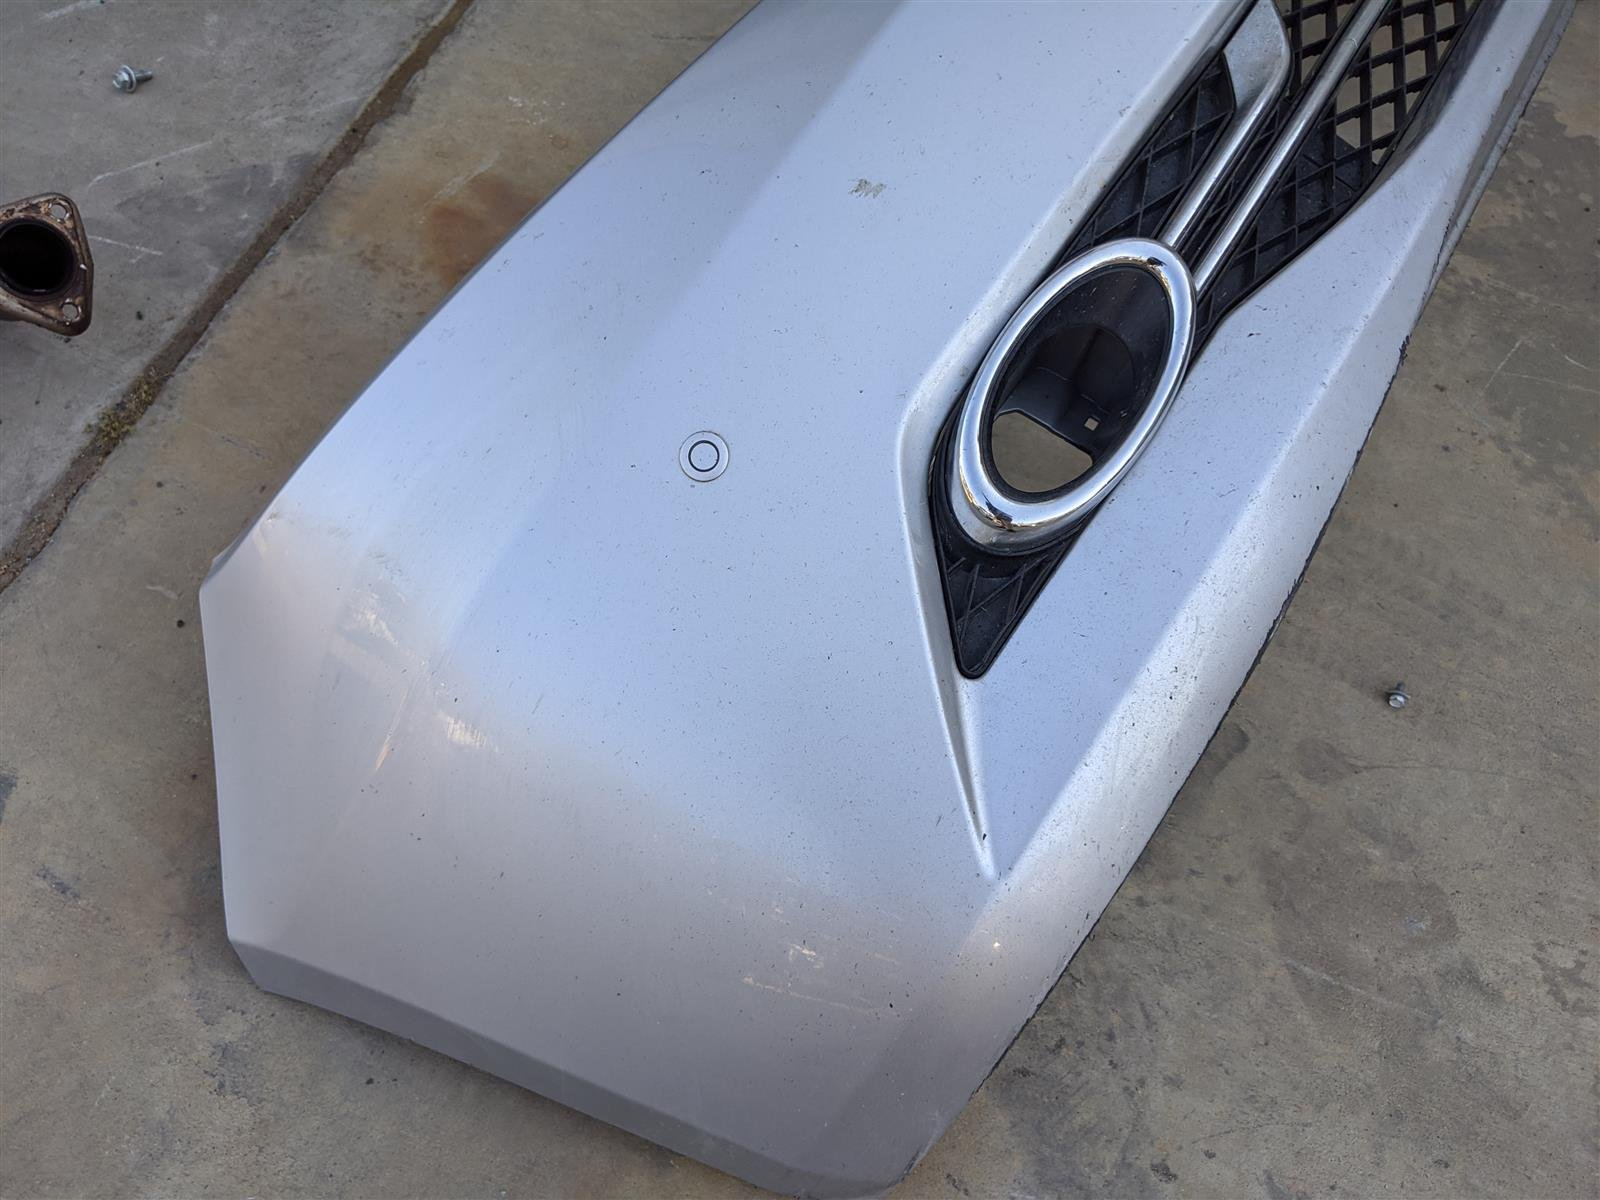 2014 Honda Odyssey Front Bumper Cover Silver, Replacement